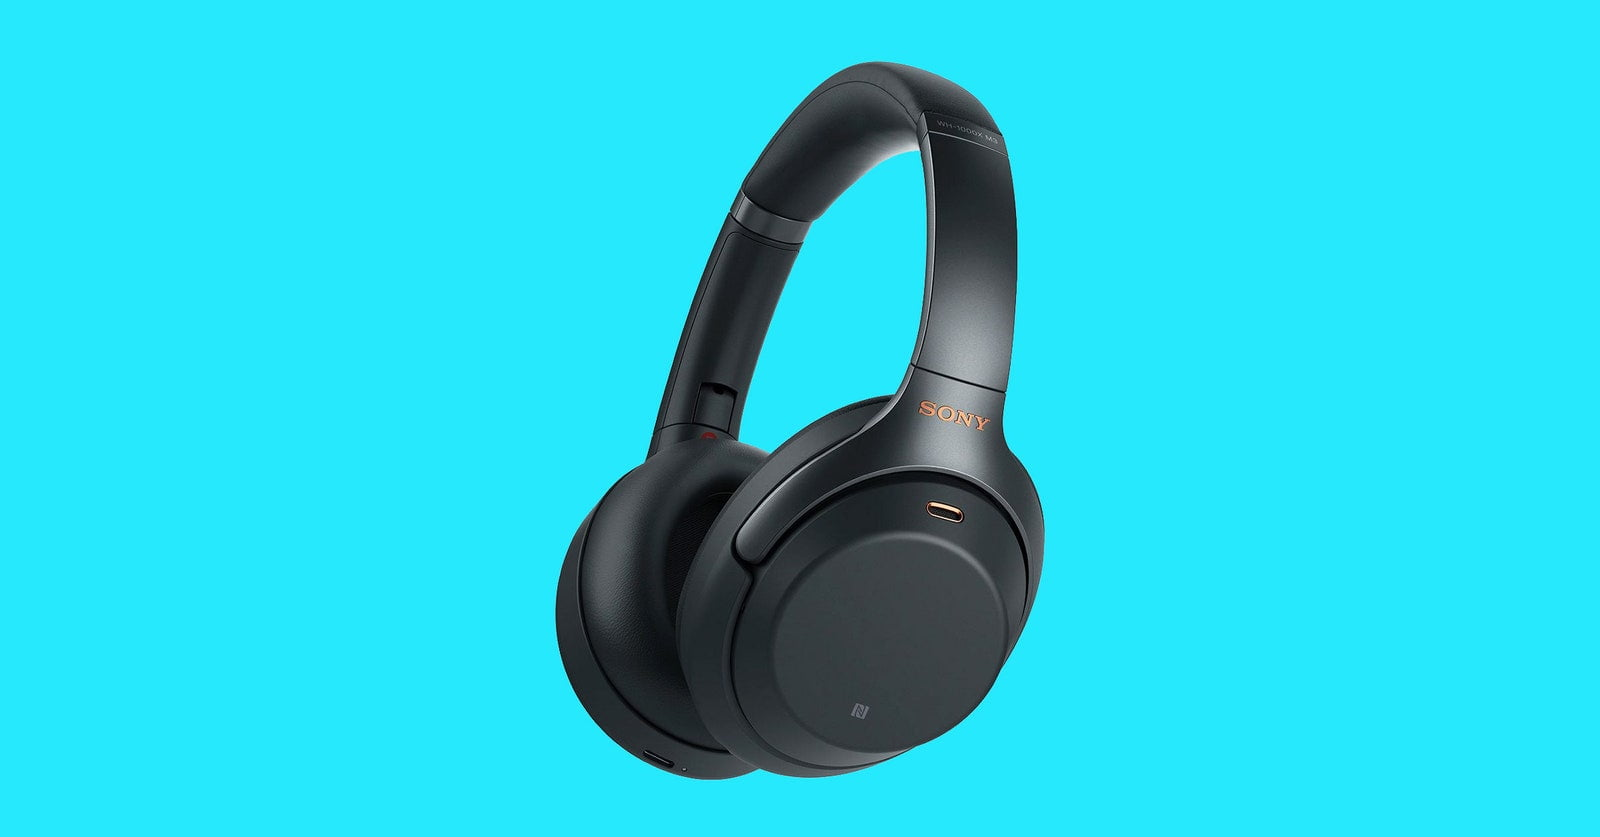 The Best Noise-Canceling Headphones to Escape Reality